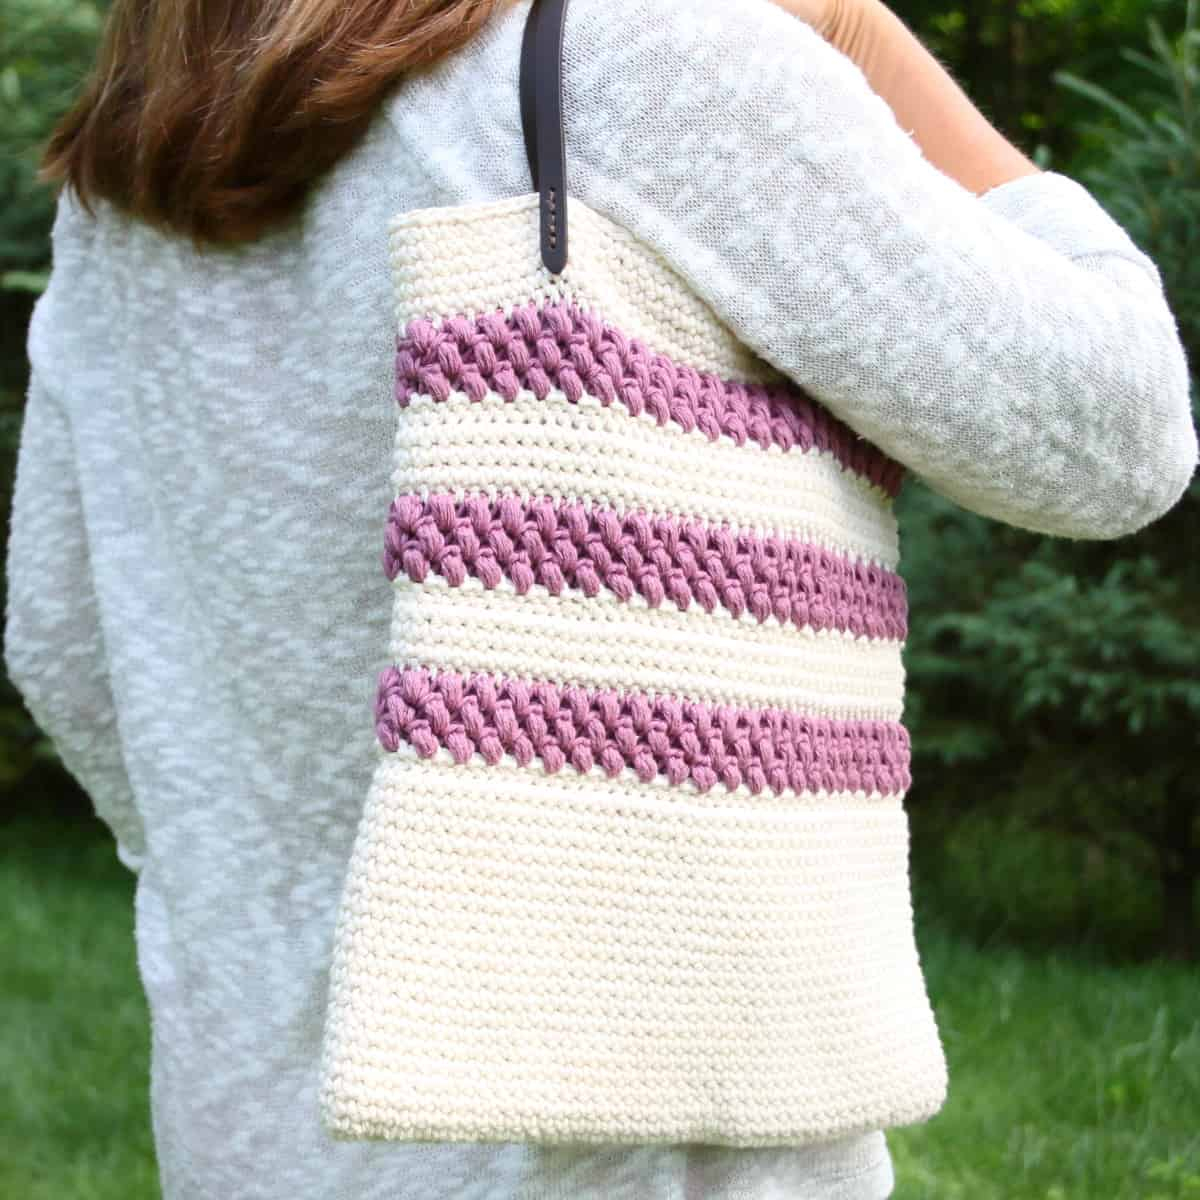 Tote Bag Patterns and Ideas that You Will Adore Crochet Tote Bag Red Clover Pattern Crochet Life